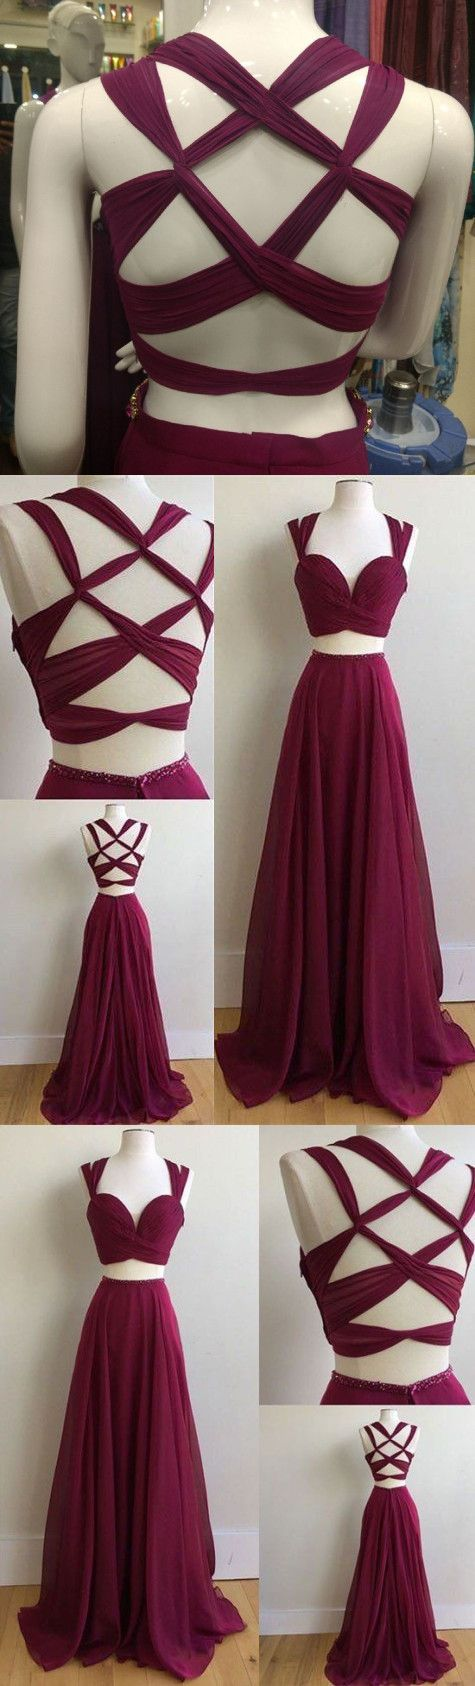 wonder if this could be done with an infinity dress